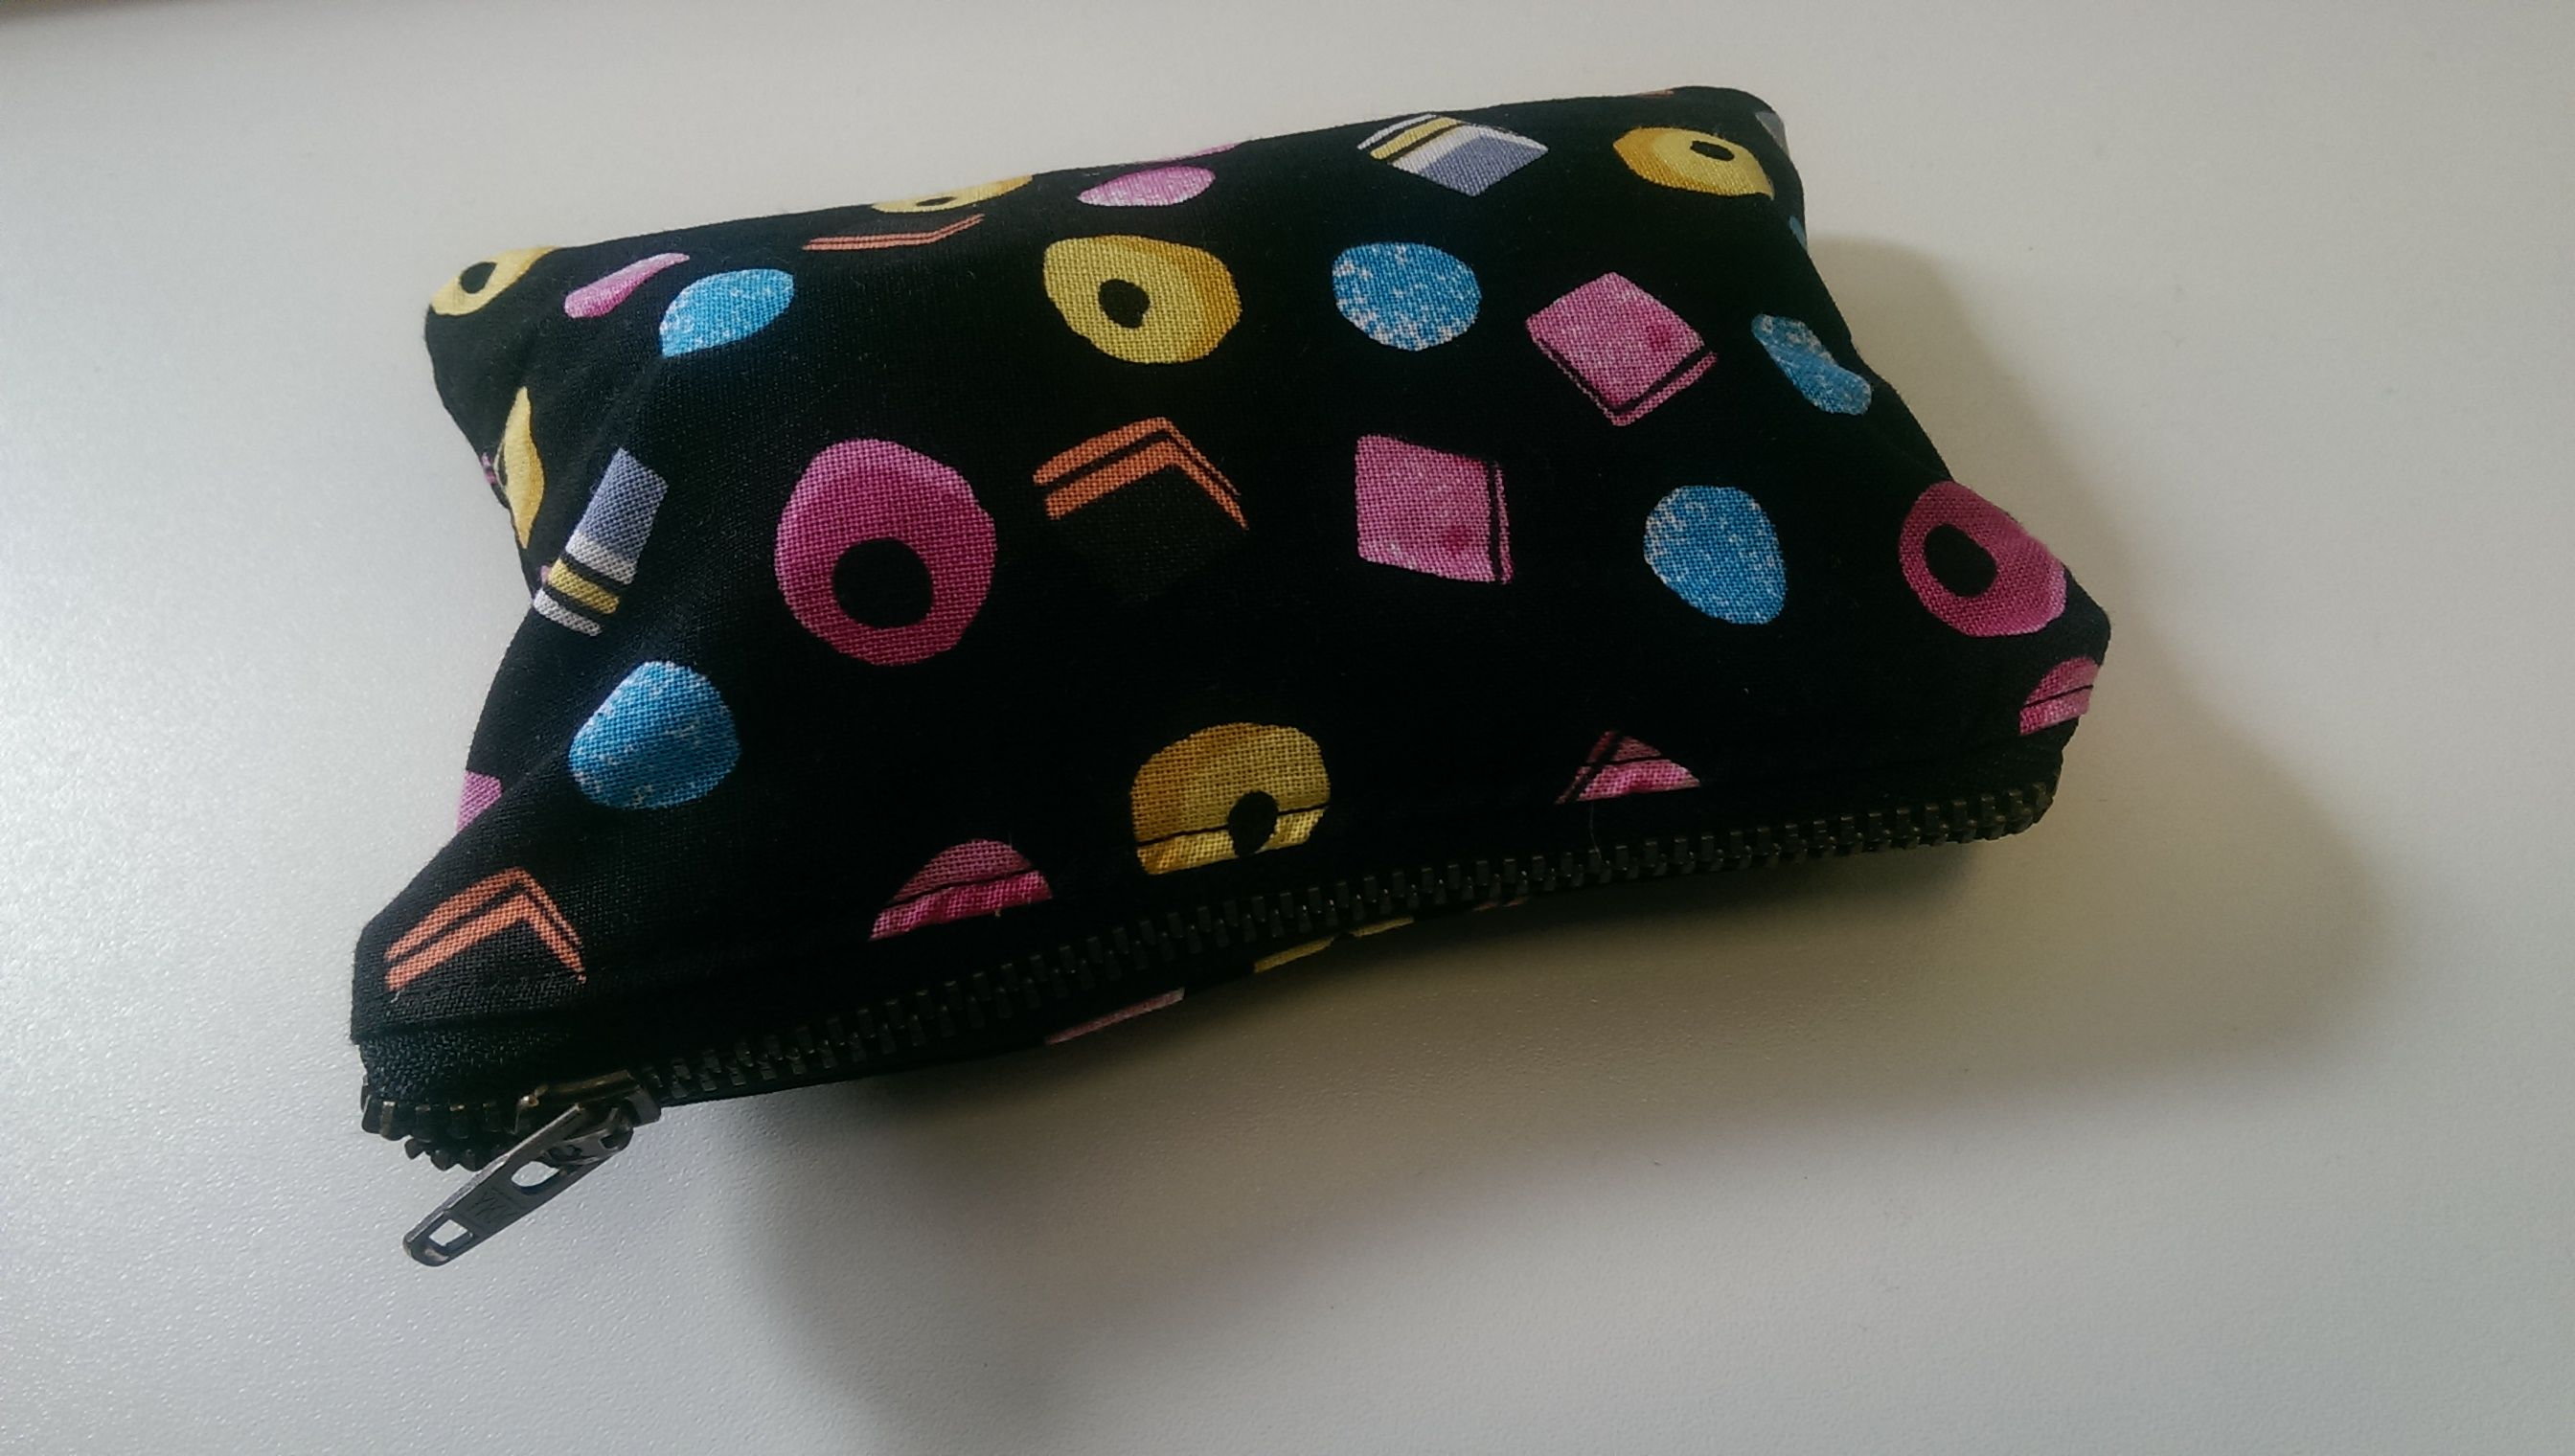 Matching purse to carry spare needles, meds etc...